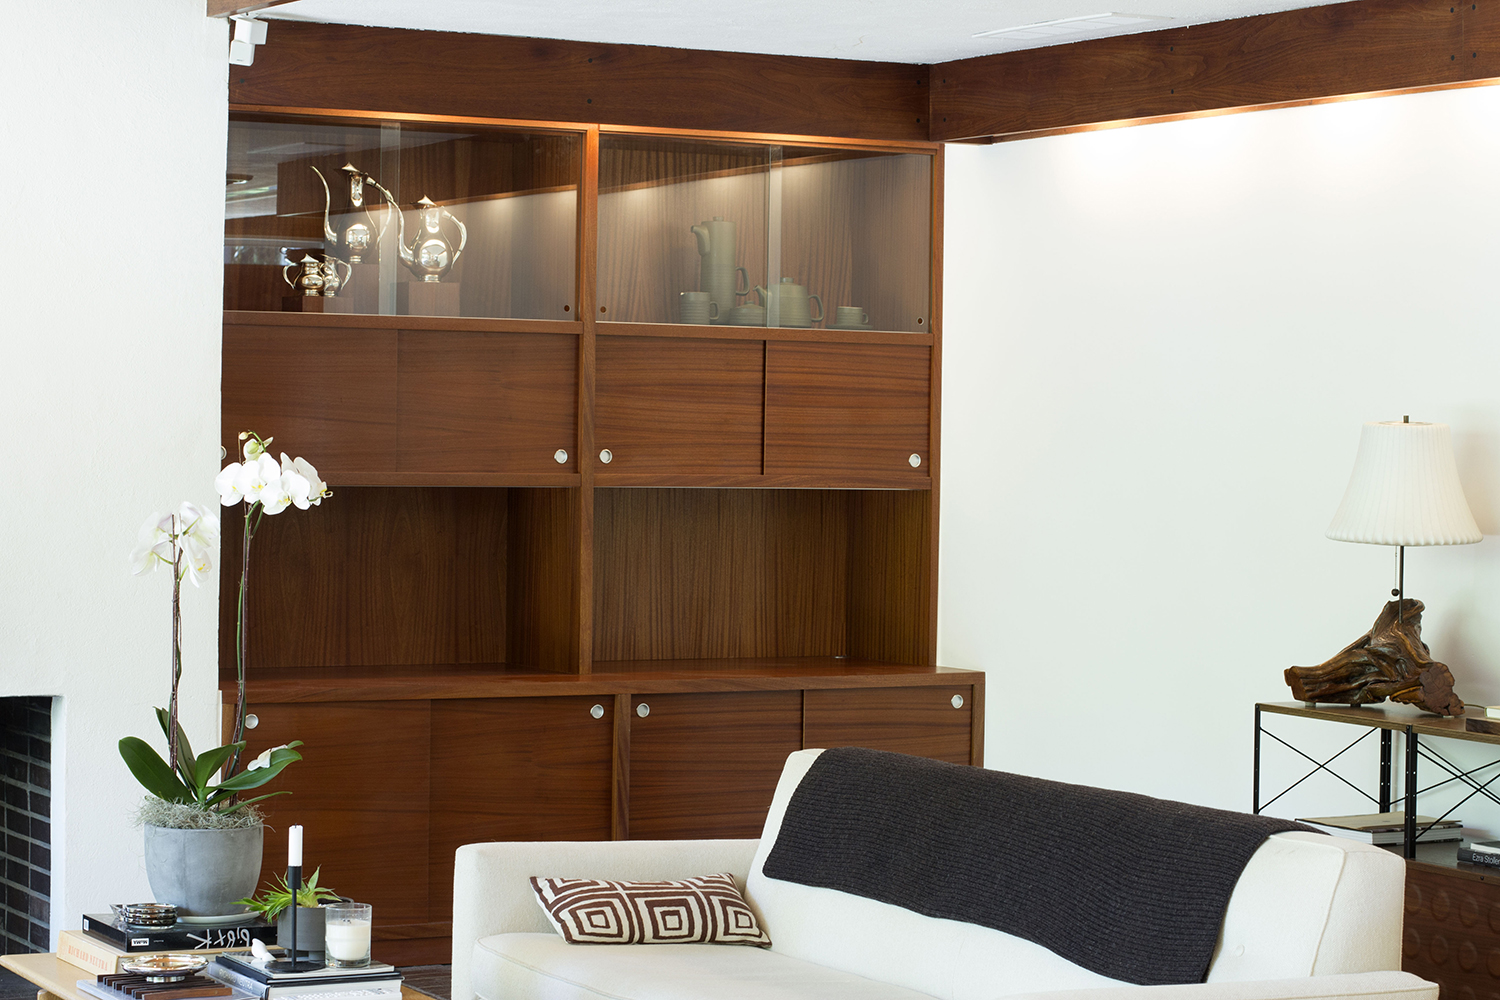 Philippine Mahogany Cabinet with sliding glass doors and LED lighting